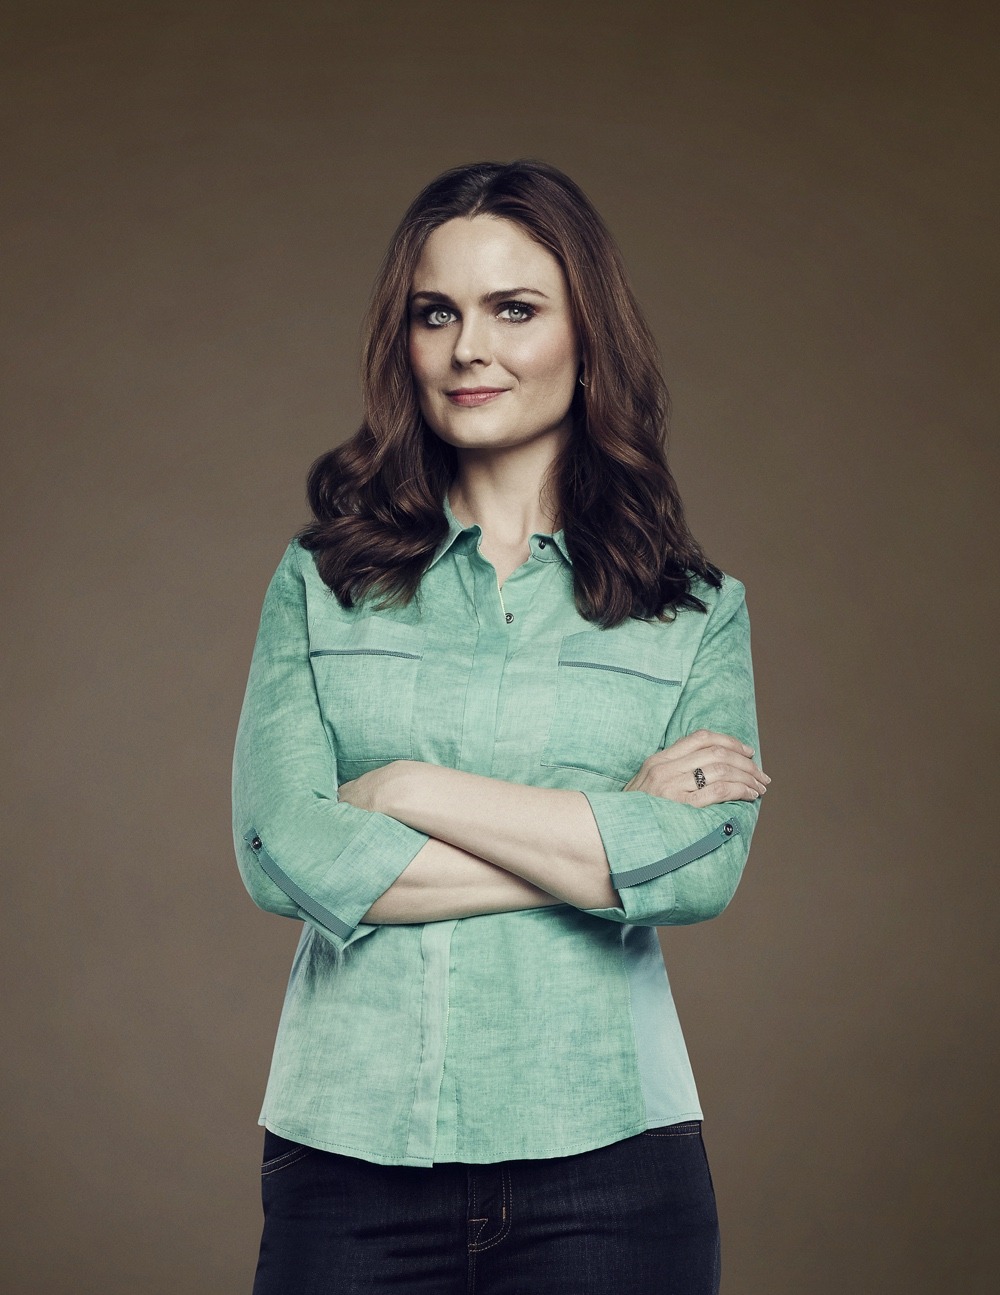 BONES Season 11 Cast Promotional Photos